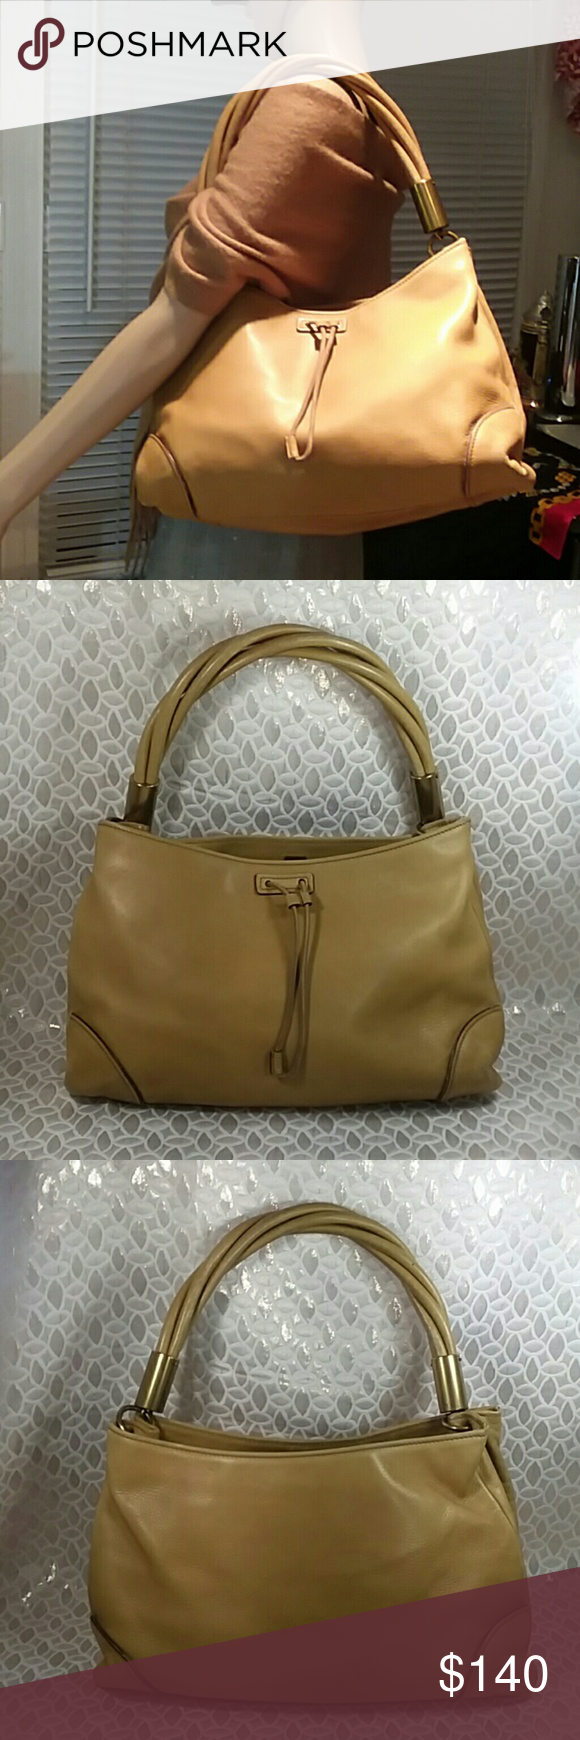 Authentic Gucci Carmel Leather Shoulder Hobo Bag. Leather showed wearing on the bottom corners. The bag was made in Italy with a serial number 109247 001013.The dimension is 8, 13 and 4. Gucci Bags Hobos